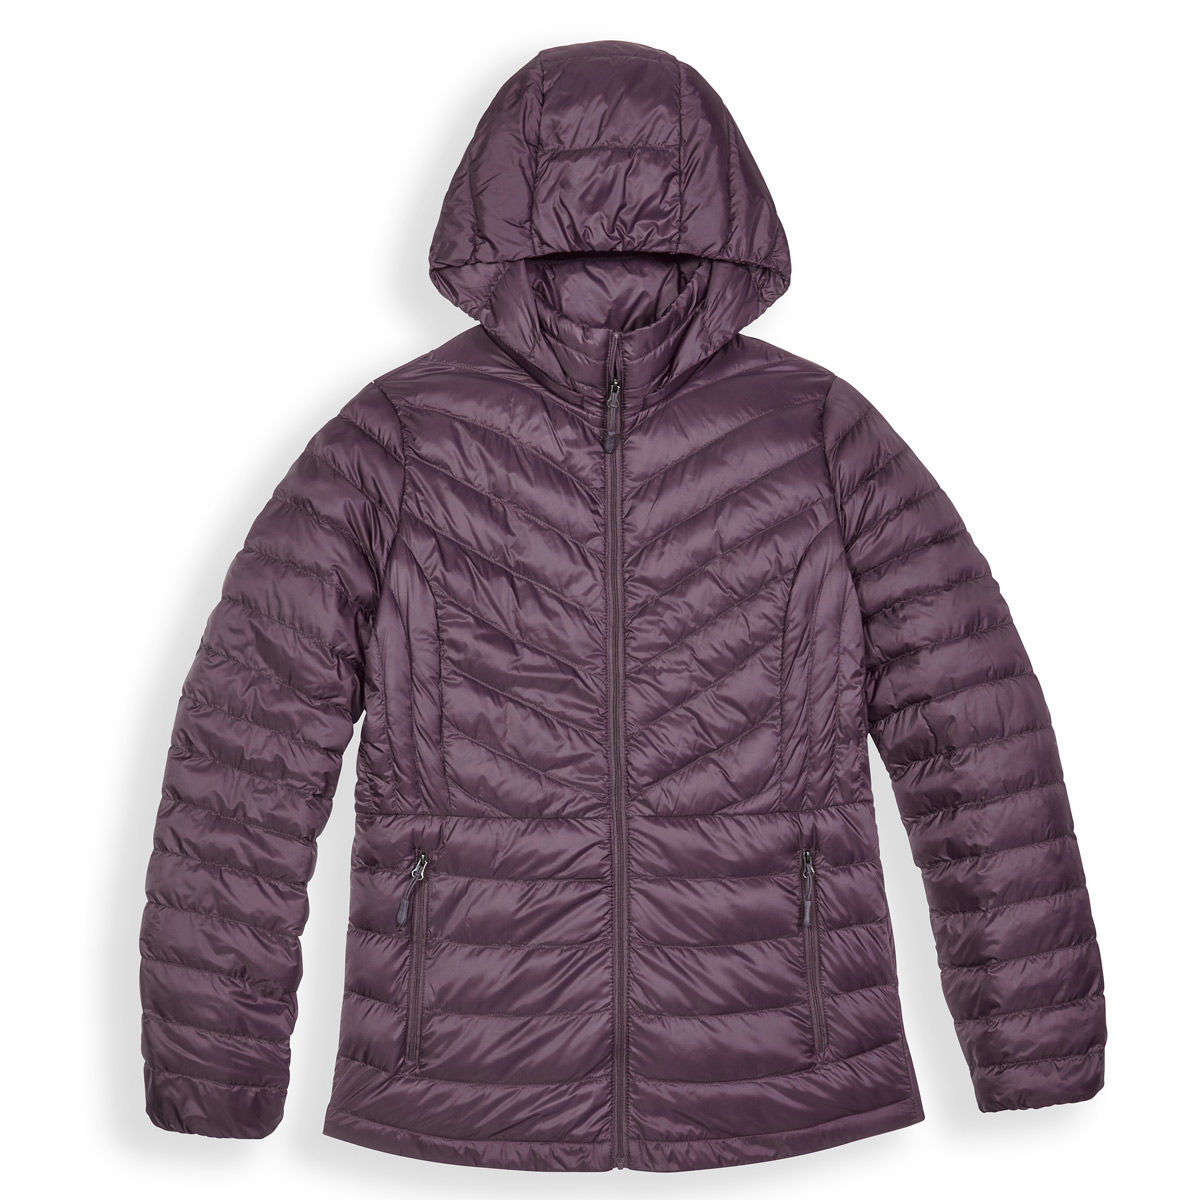 32 Degrees Womens Short Packable Jacket